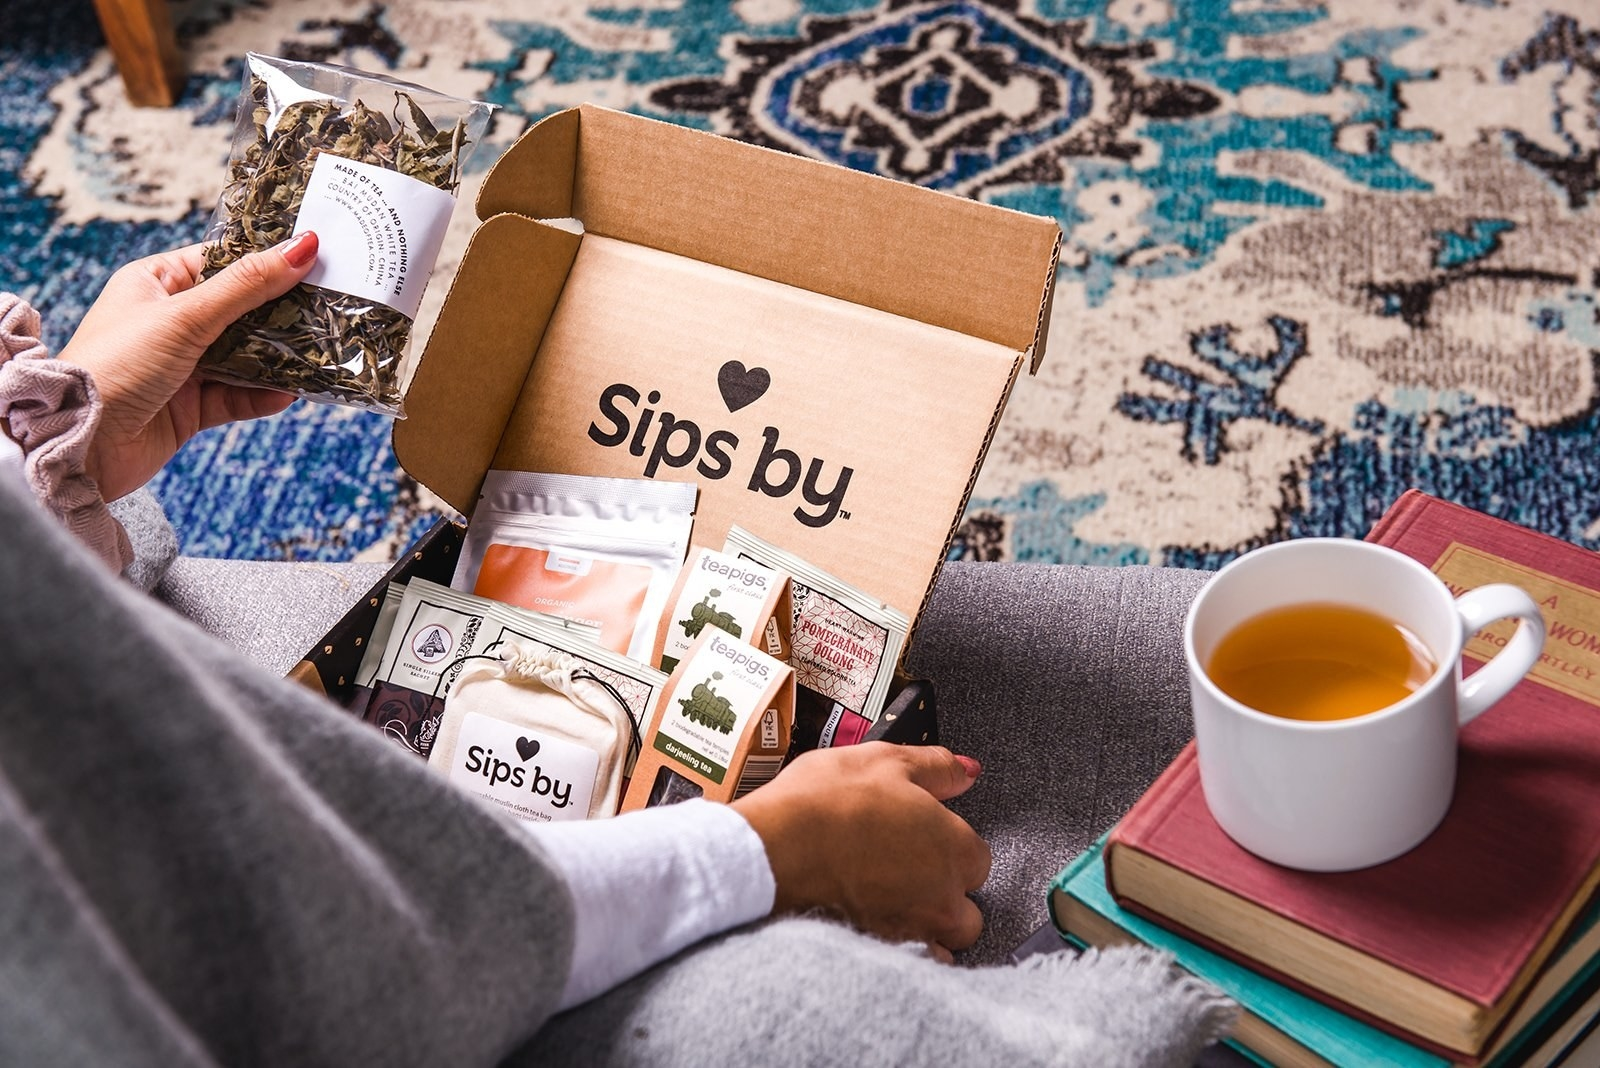 a model opens up a sips by box full of tea bags